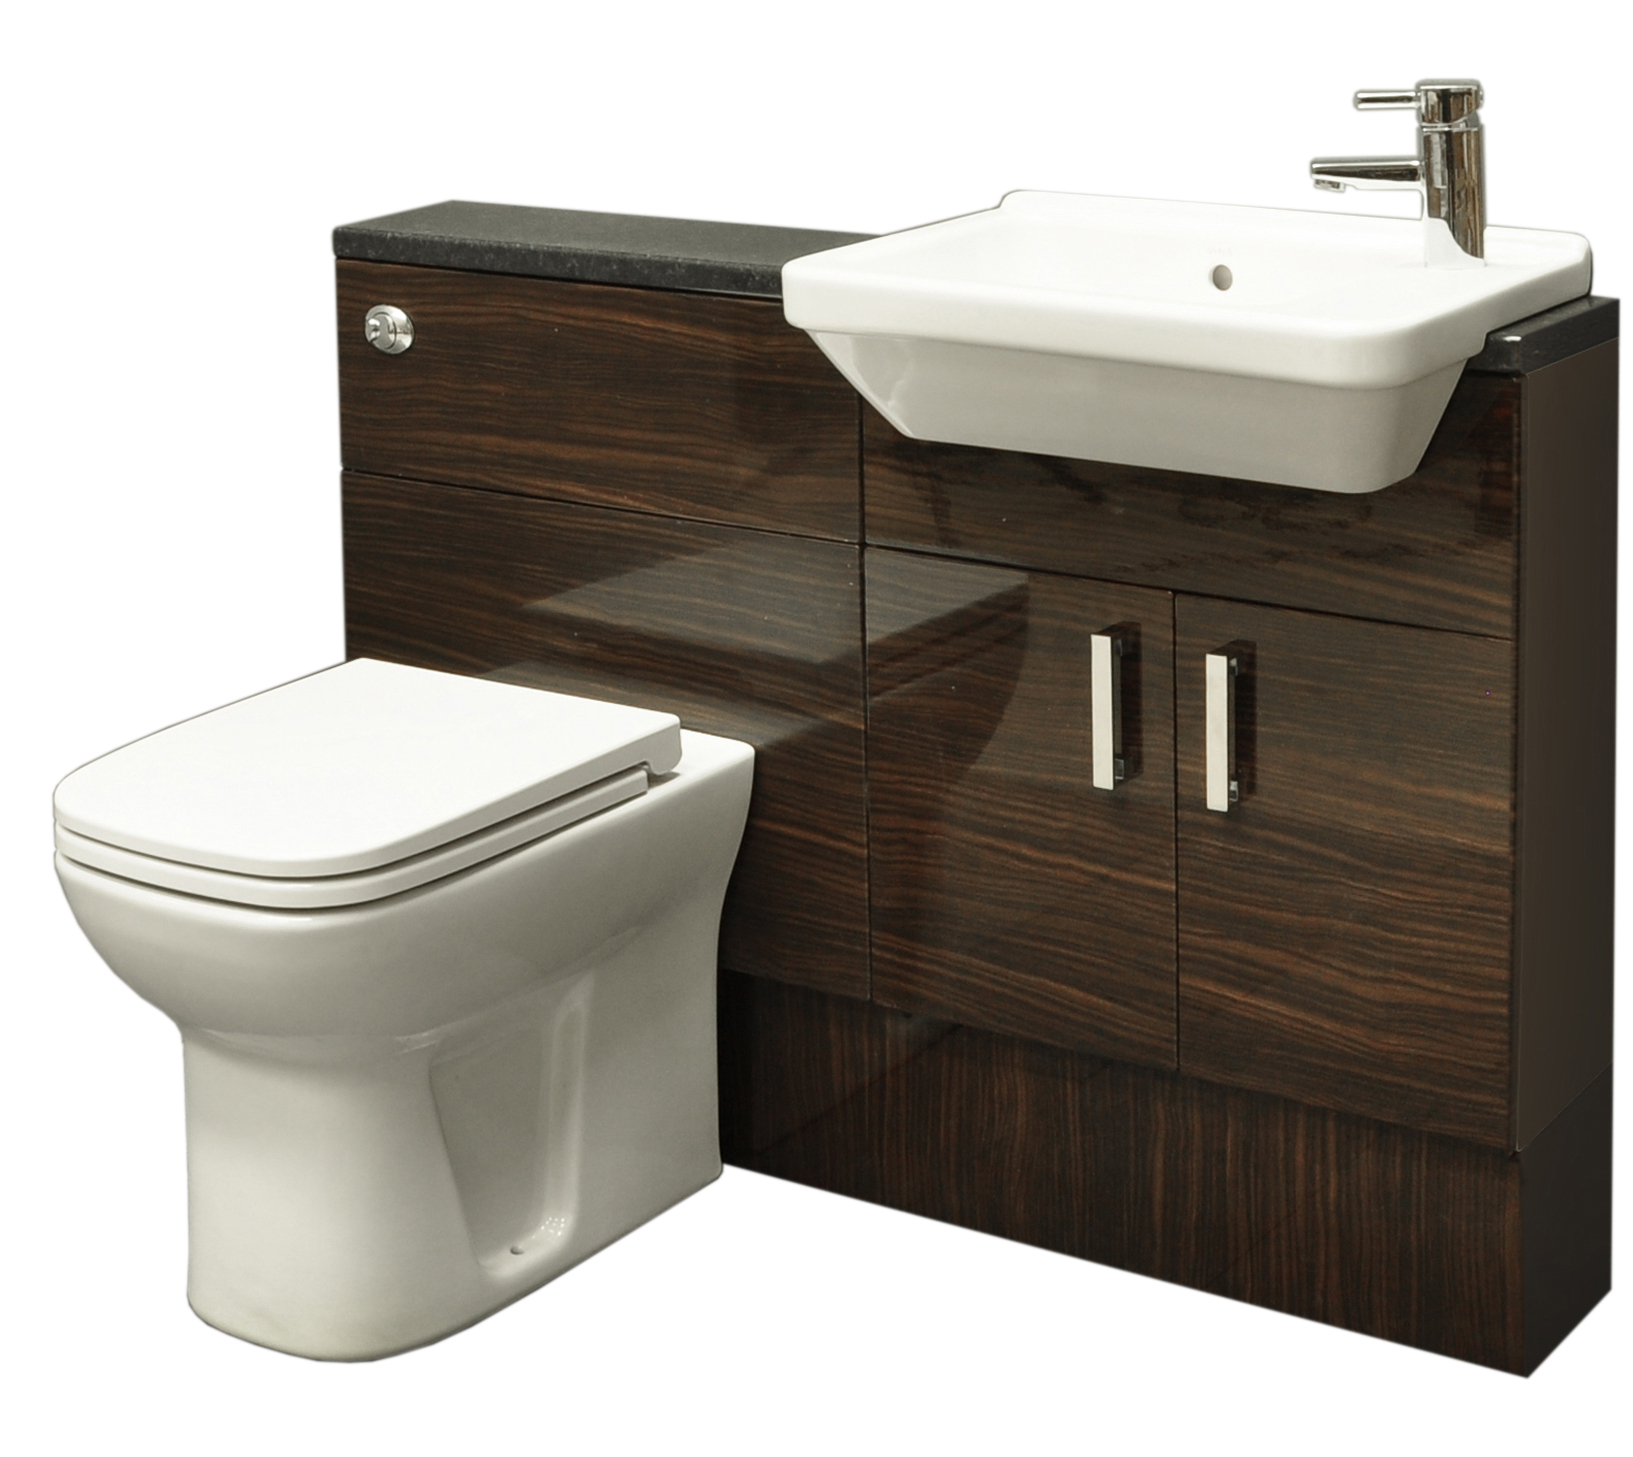 Elegant Wetstyles Newest Brand, W2, Includes A New Line Of Allwood Bathroom Furniture And Medicine Cabinets, As Well As Three New Freestanding Soaking Tub Designs The Vanities And Bath Furniture Pieces Showcase A Slim Profile To Make A